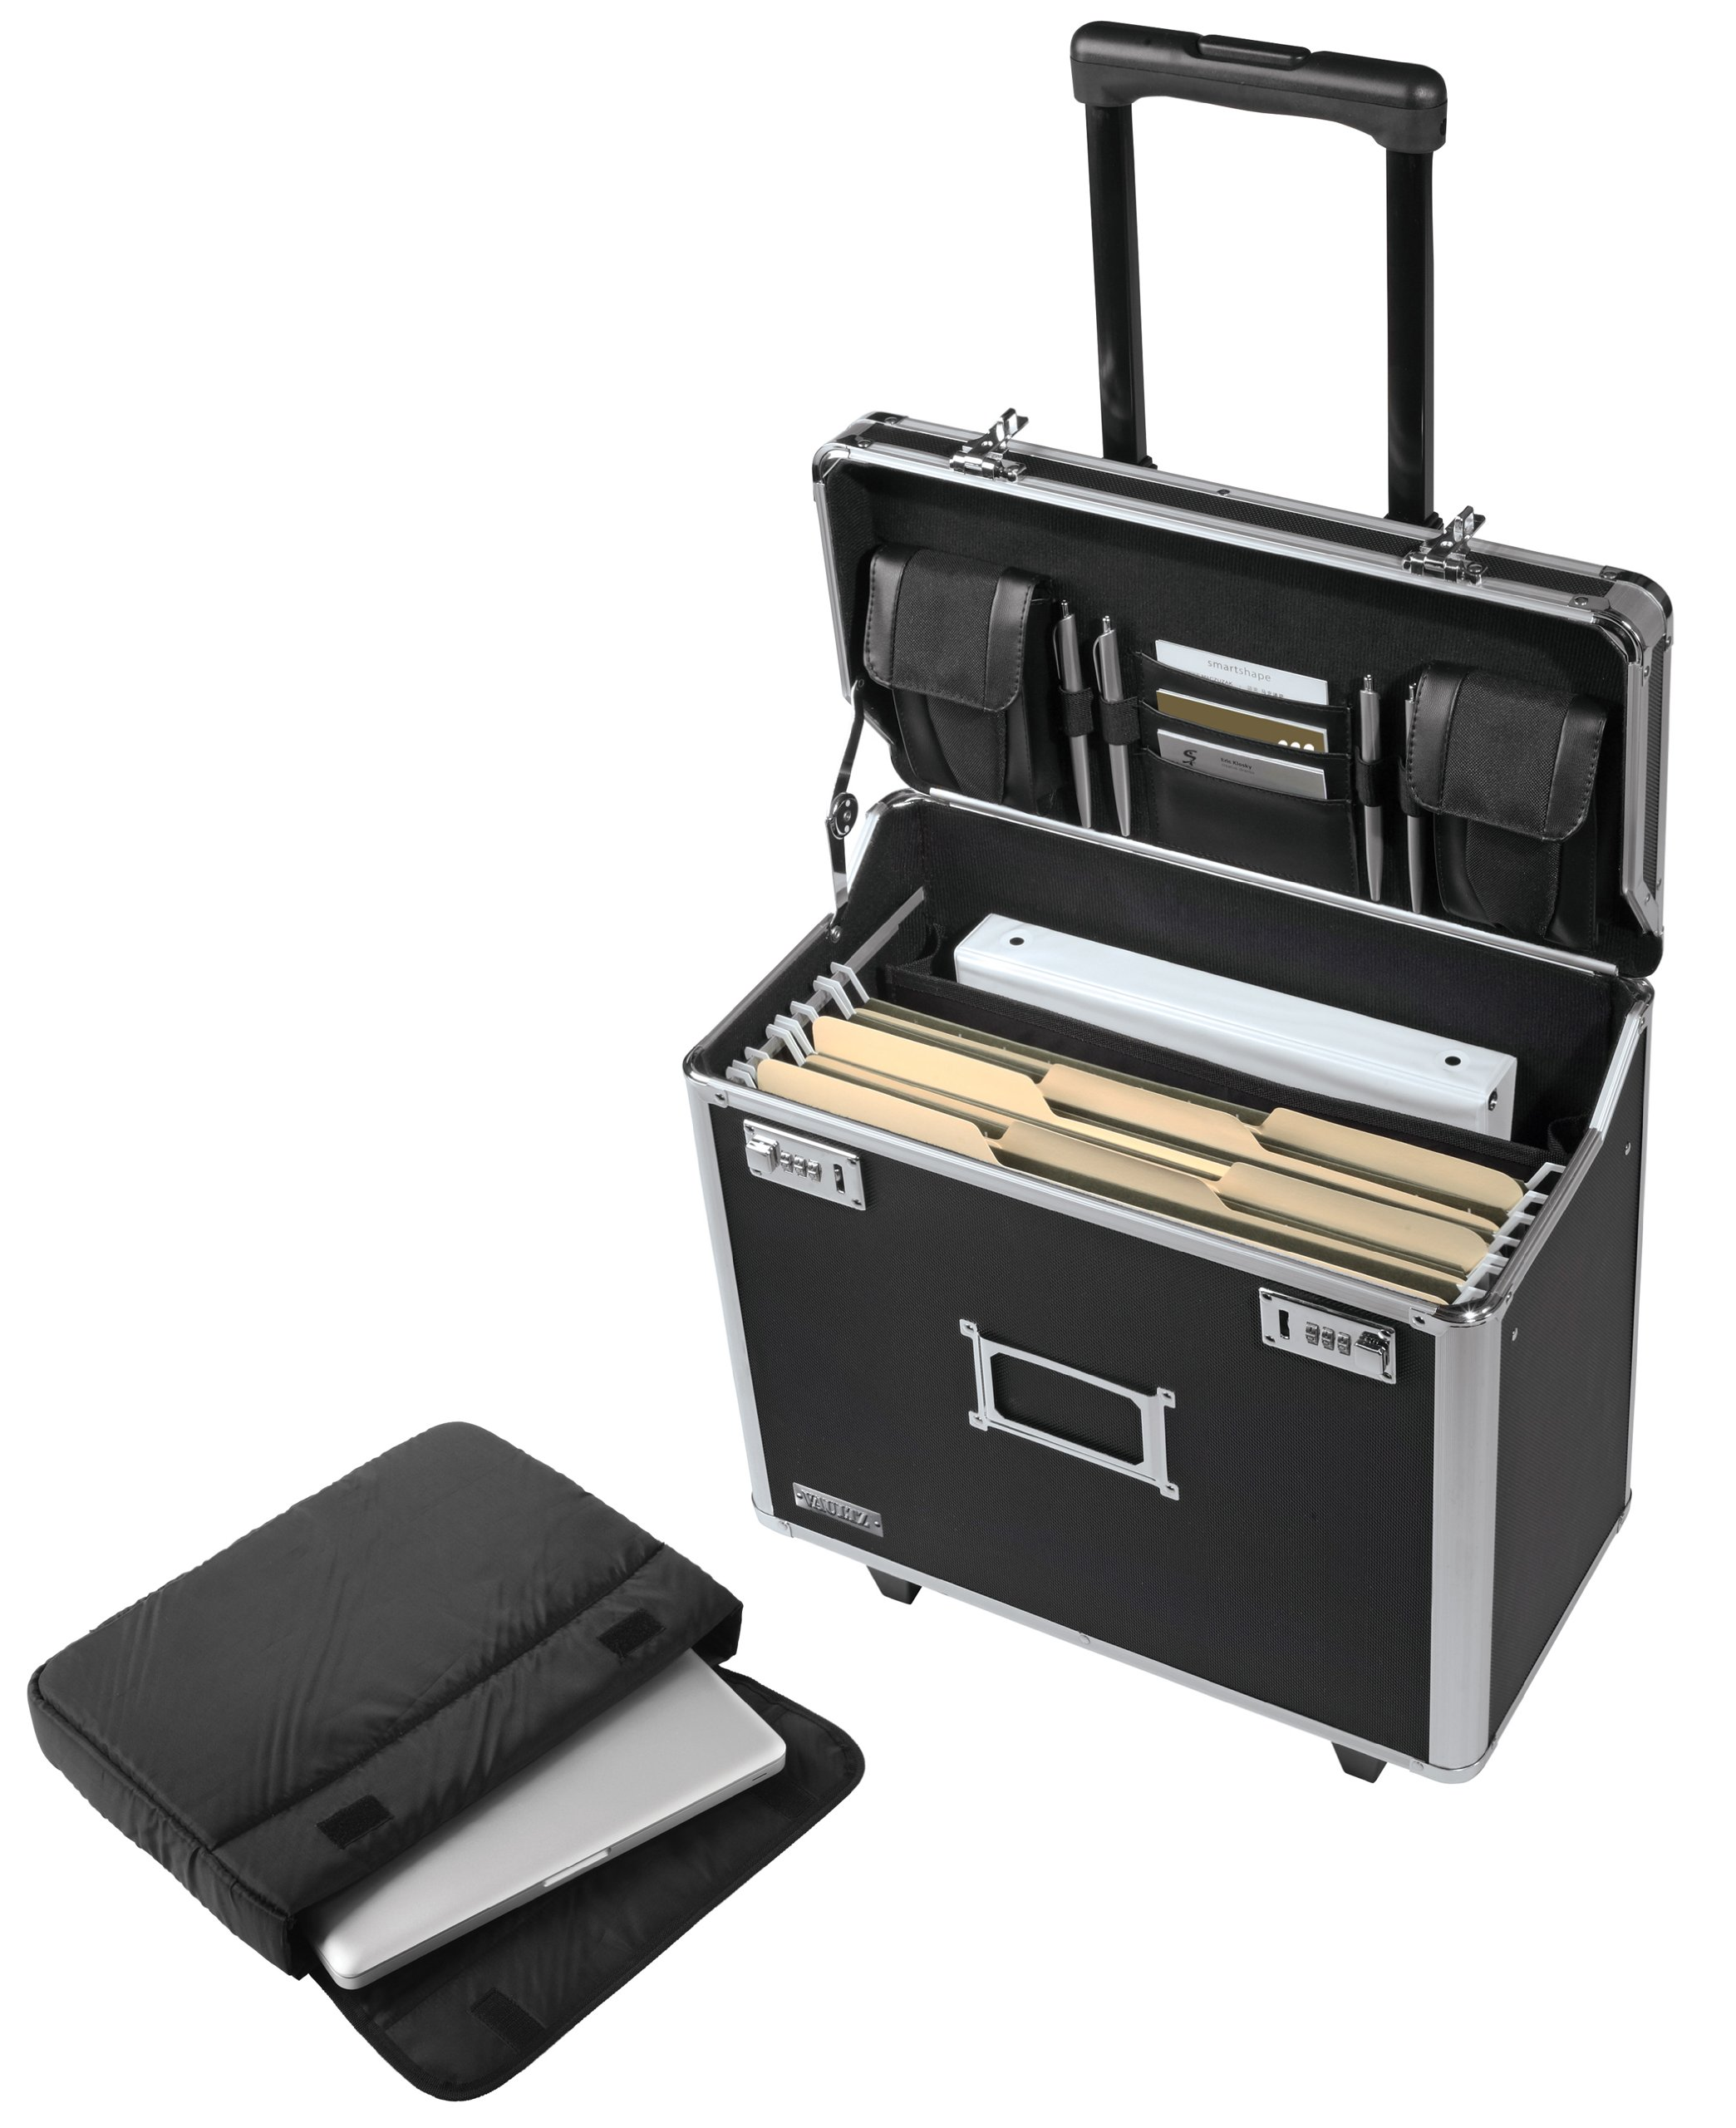 Vaultz Locking Mobile Business Case, Legal Size, 15 x 10 x 16 Inches, Black (VZ00194)